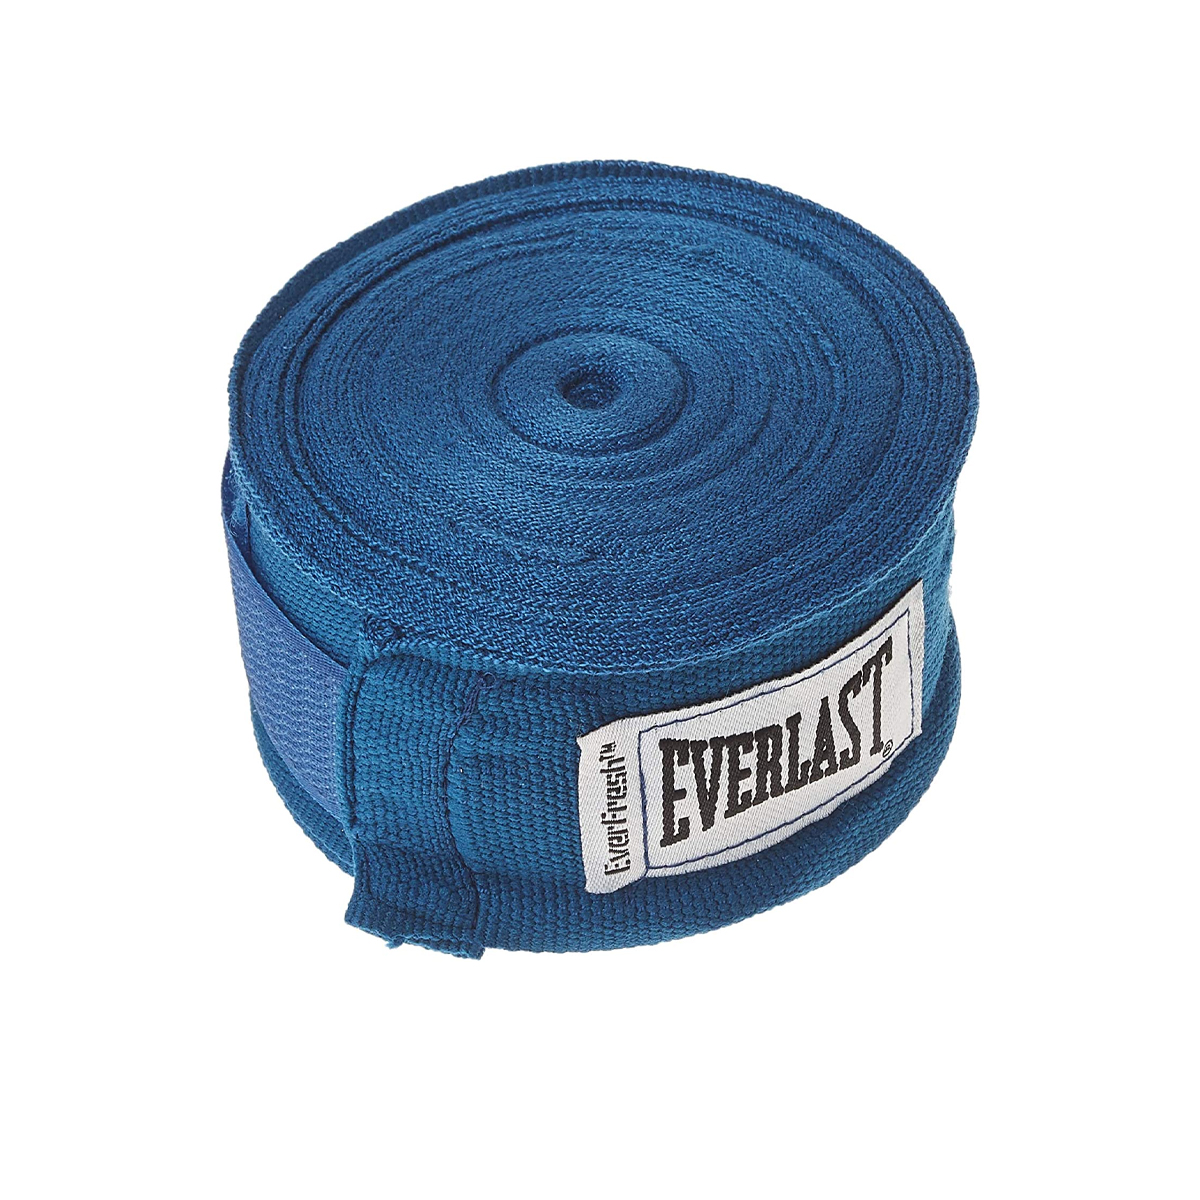 "180"" Pro Hand Wrap, Blue, swatch"